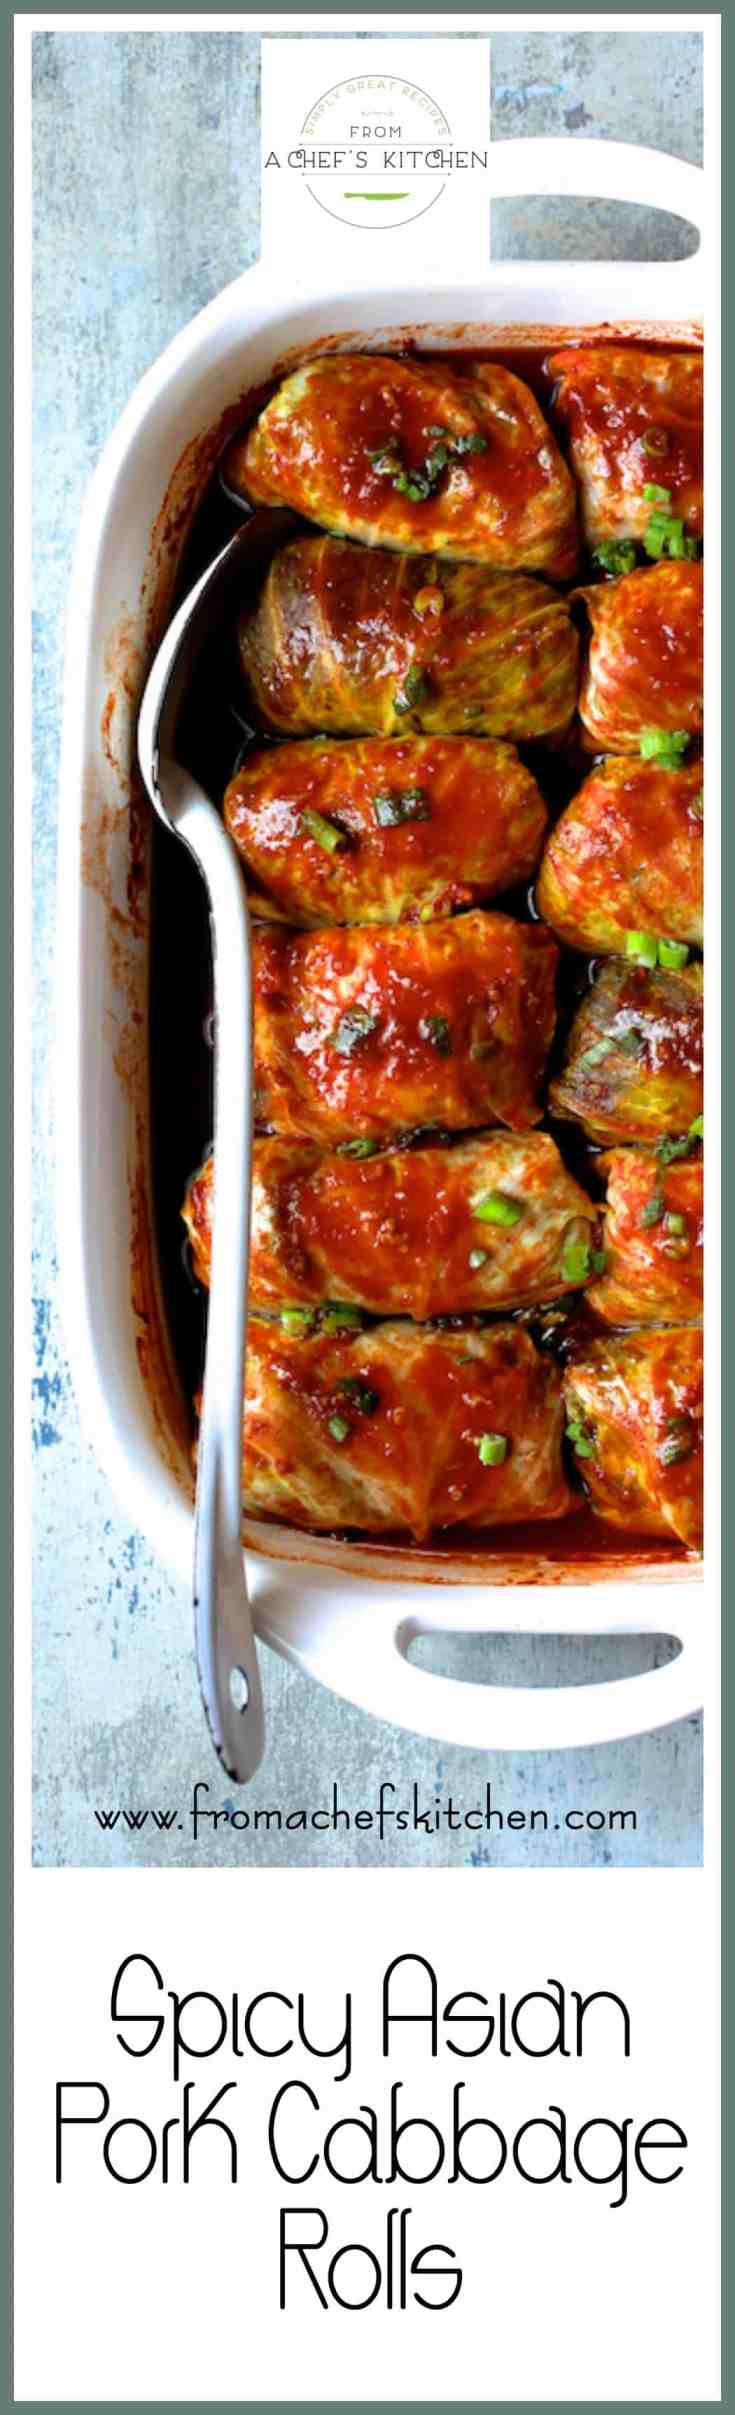 Spicy Asian Pork Cabbage Rolls are a spicy, Asian-inspired twist on traditional cabbage rolls! Use turkey, chicken, beef or even tofu if you prefer! #pork #cabbage #asian #cabbagerolls